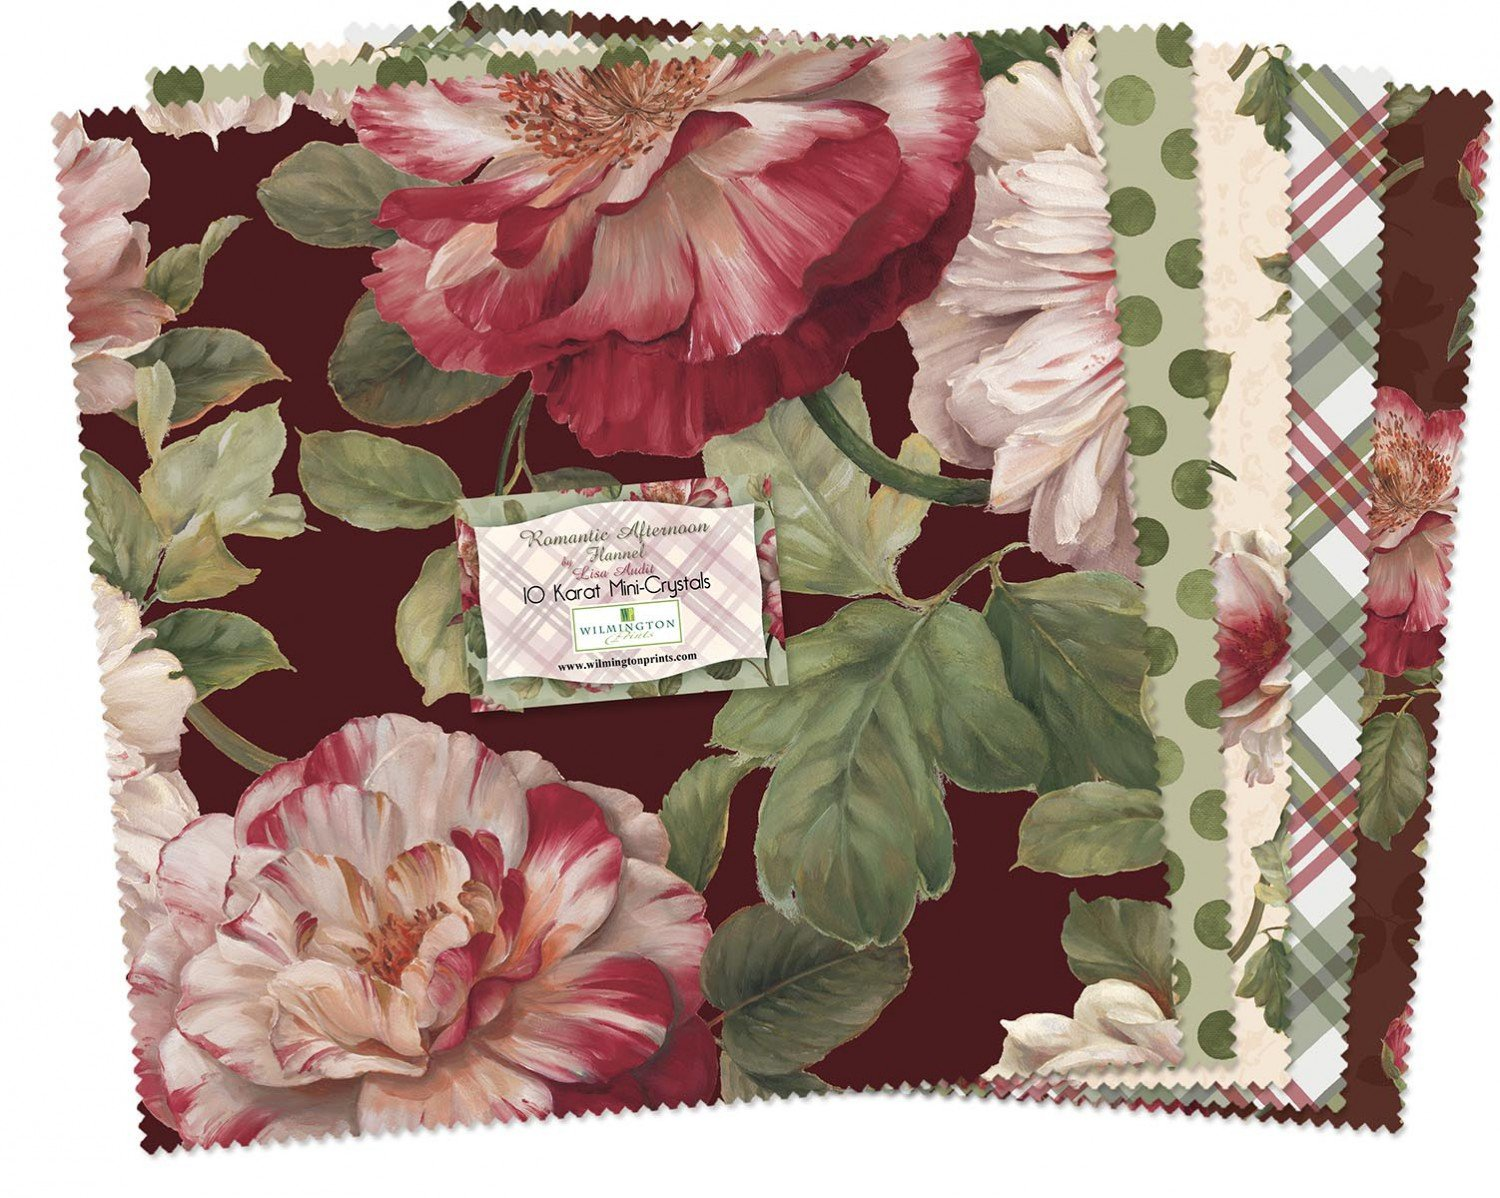 Wilmington 10in Squares Romantic Afternoon Flannel 24pcs/bundle